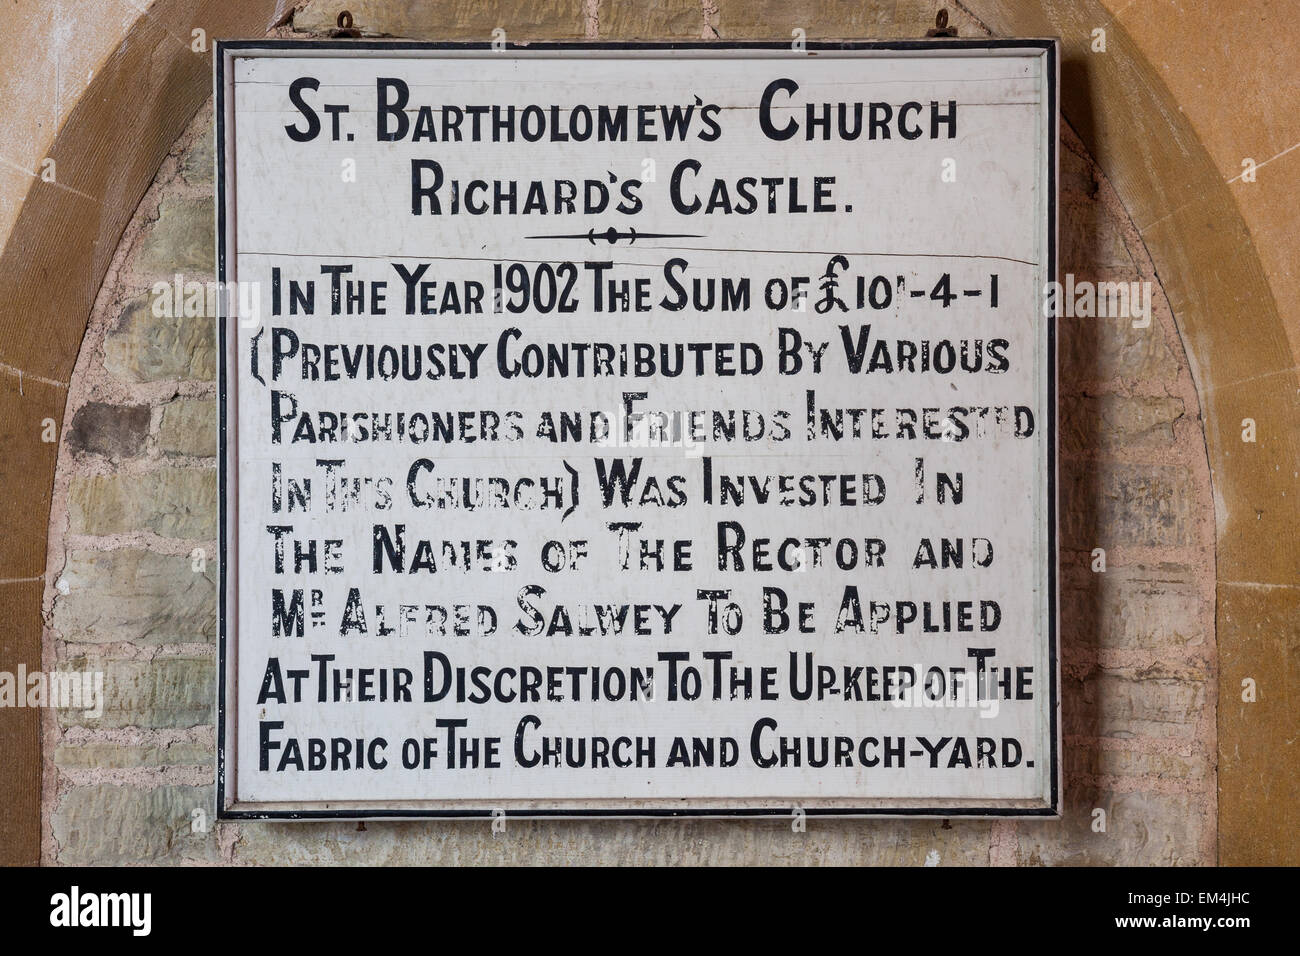 Plaque inside St Bartholomew's Church, Richard's Castle, Herefordshire - Stock Image